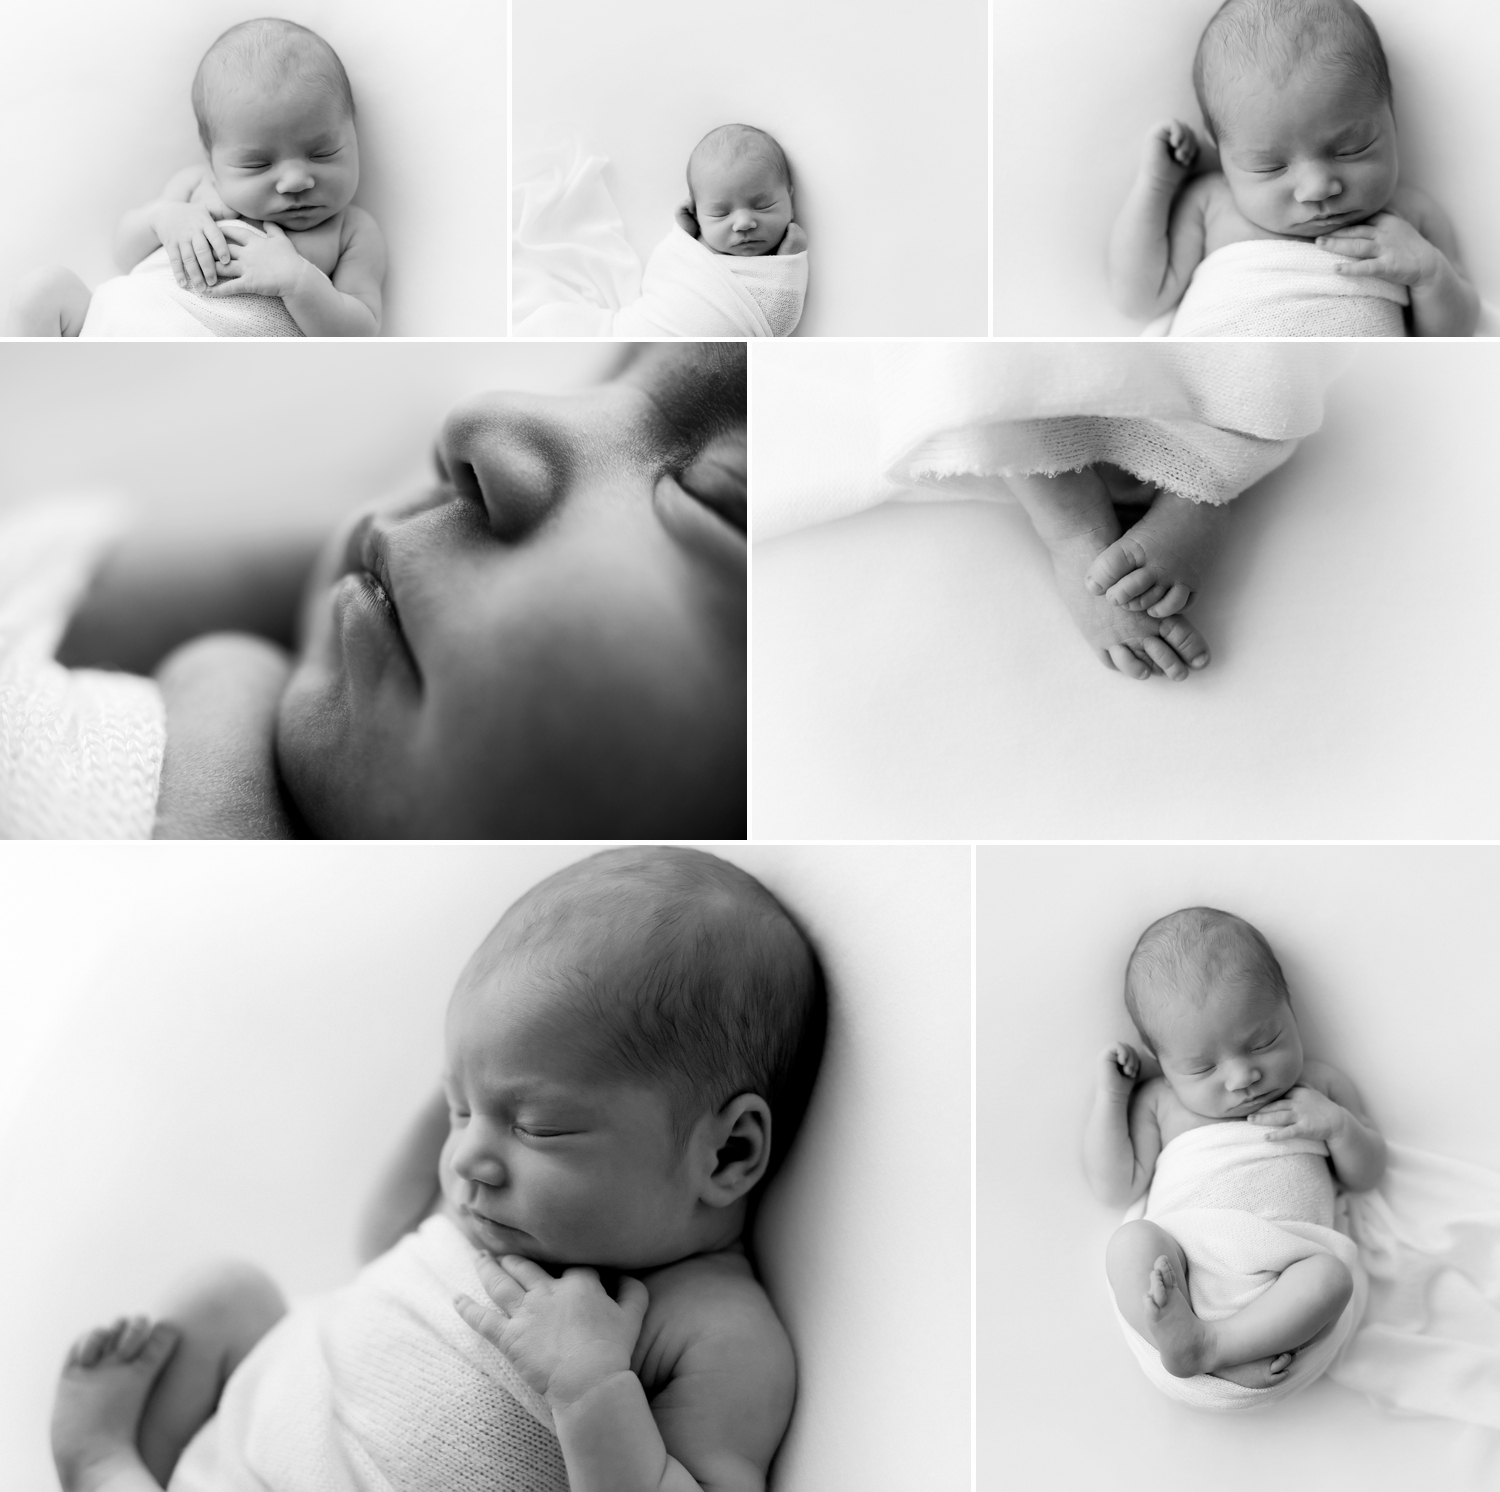 Natural artistic newborn photography in NYC by esteemed maternity and newborn photographer  Lola Melani. Fine-Art b&w newborn photos